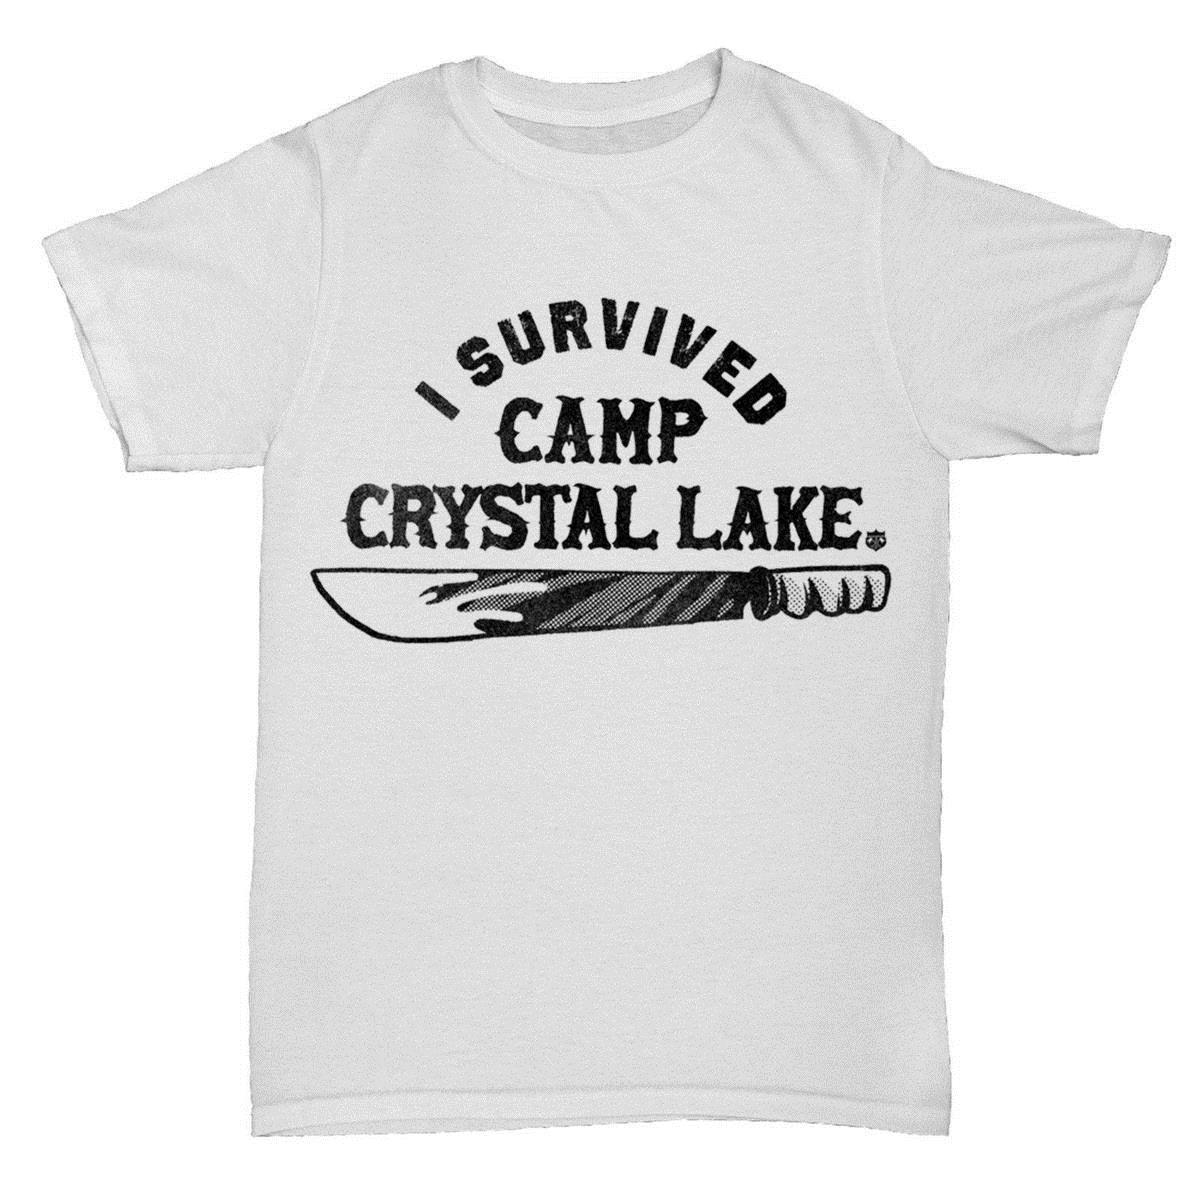 CAMP CRYSTAL LAKE INSPIRED FRIDAY 13TH MOVIE FILM HORROR MENS RETRO T Shirt  Now T Shirts Deal With It T Shirt From Yuxin0008,  12.94  DHgate.Com 1b47a8164b